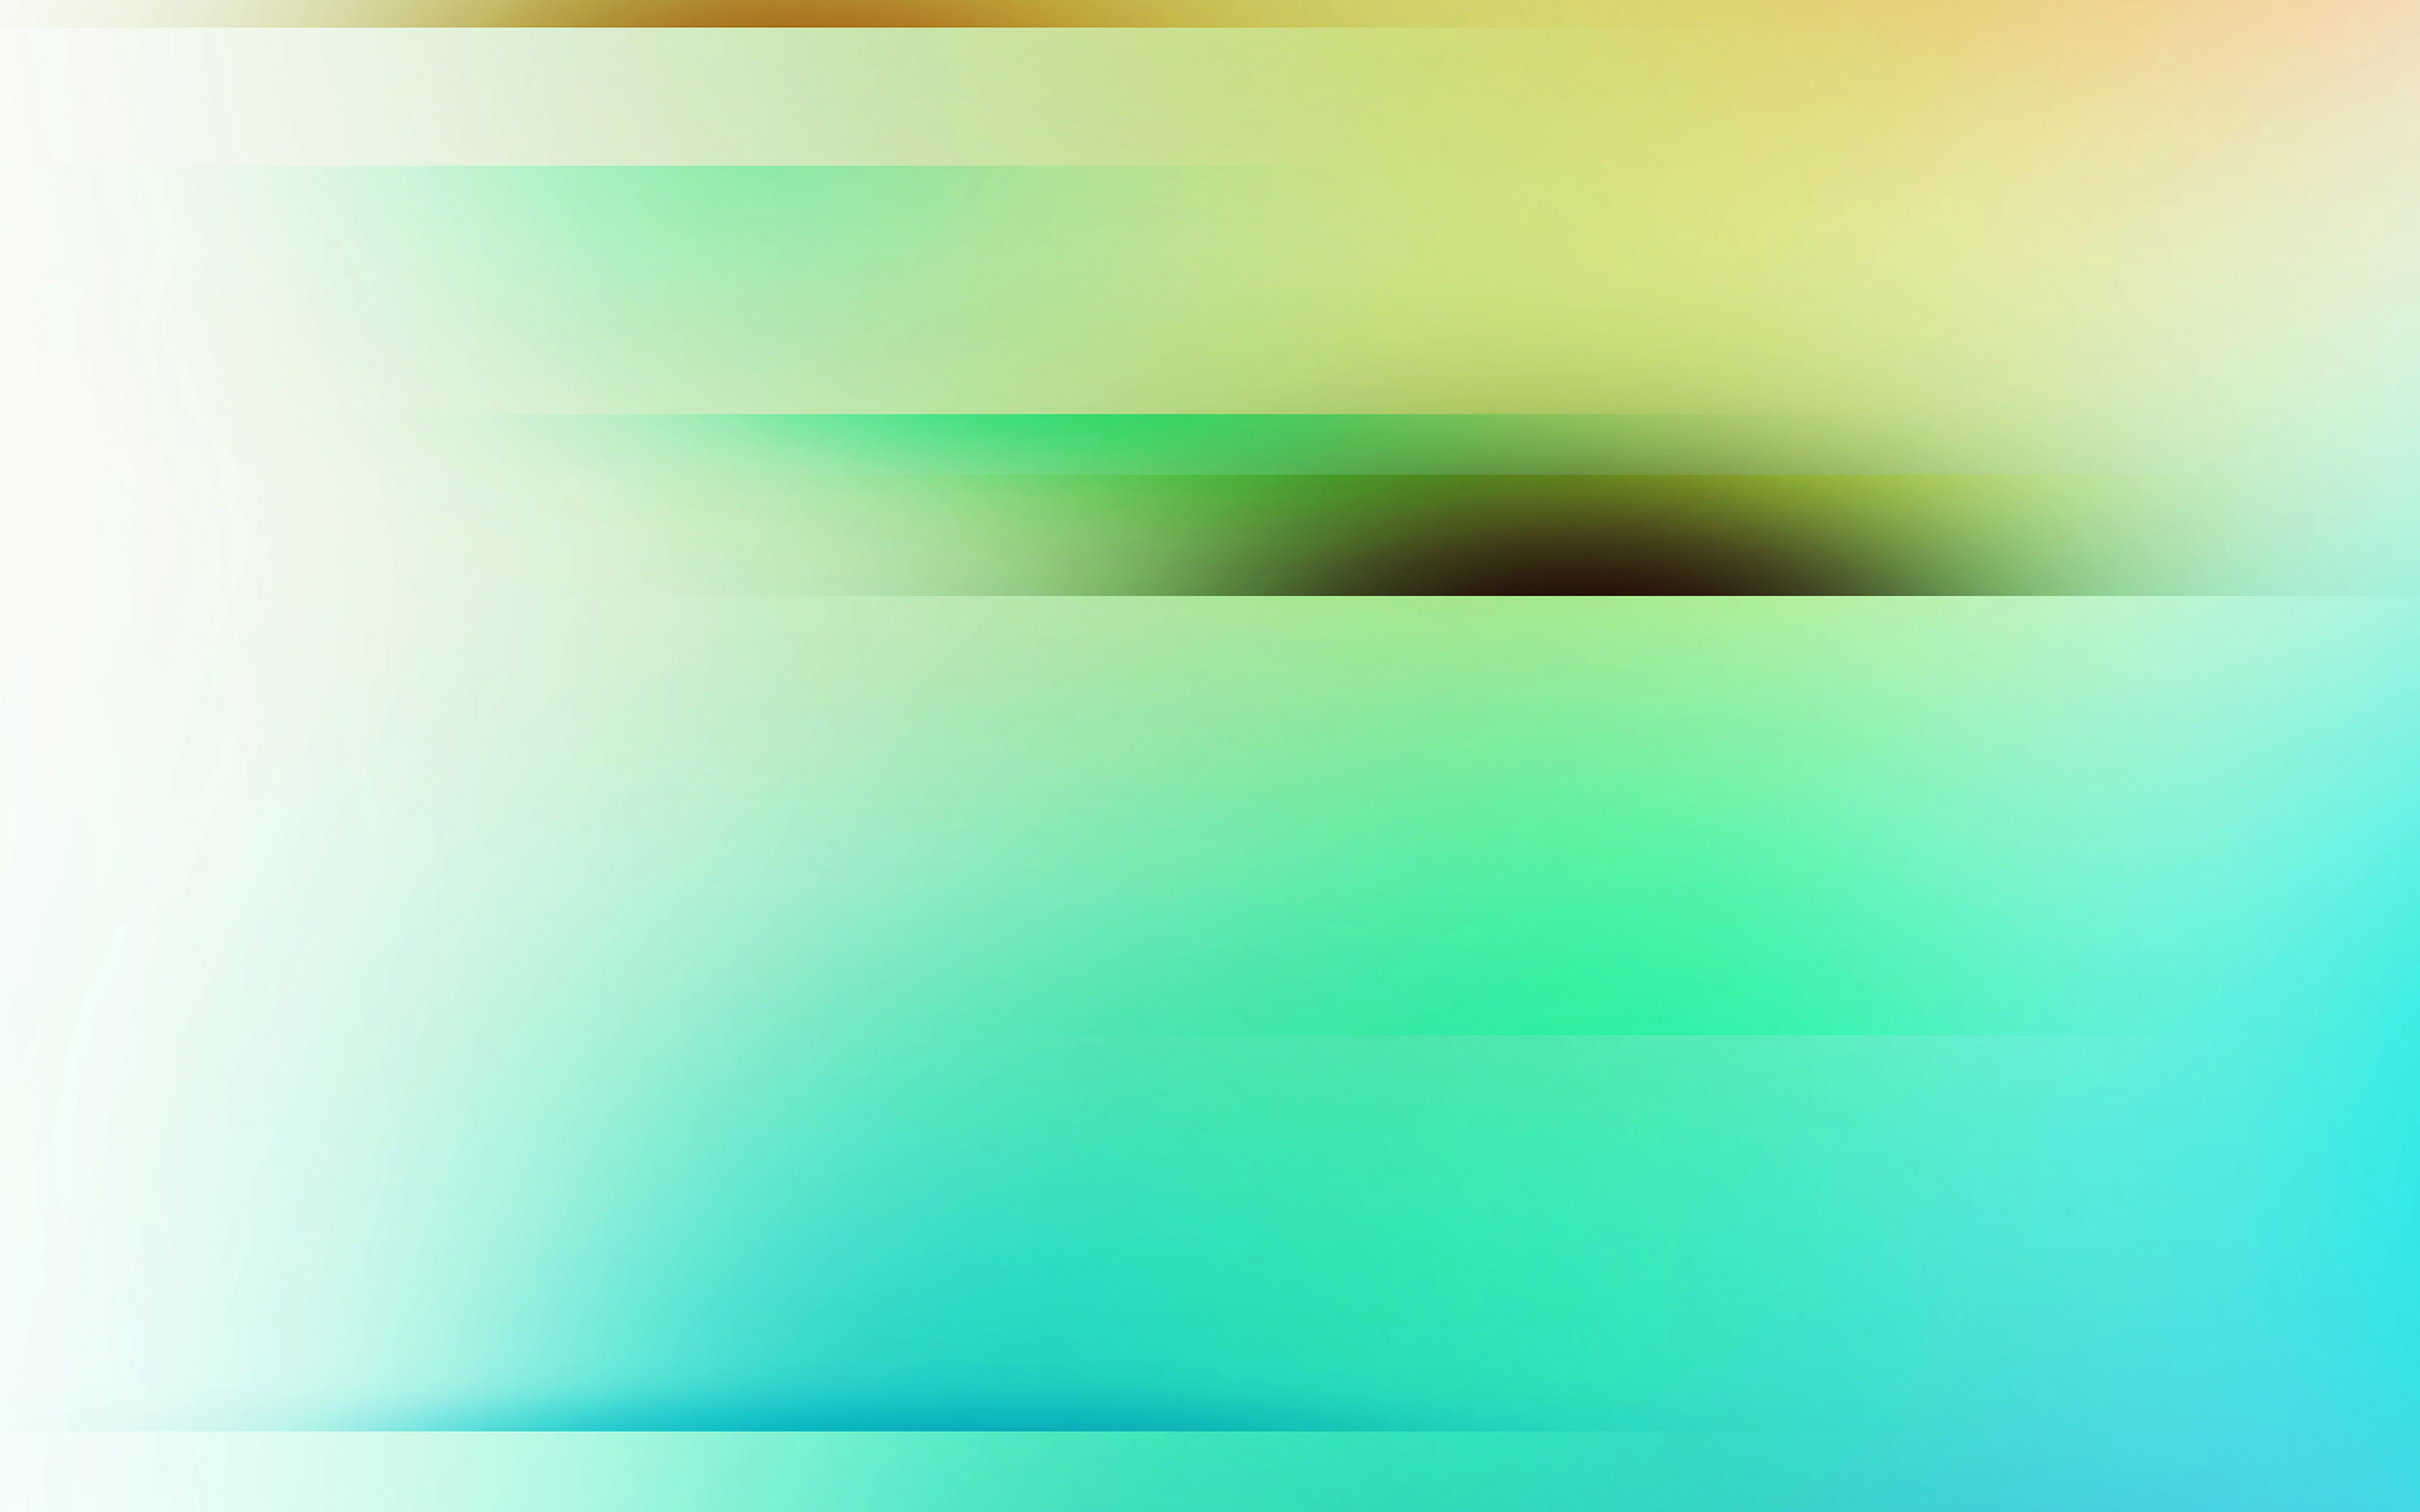 ve63-colorful-horizontal-lines-abstract-pattern-art-wallpaper